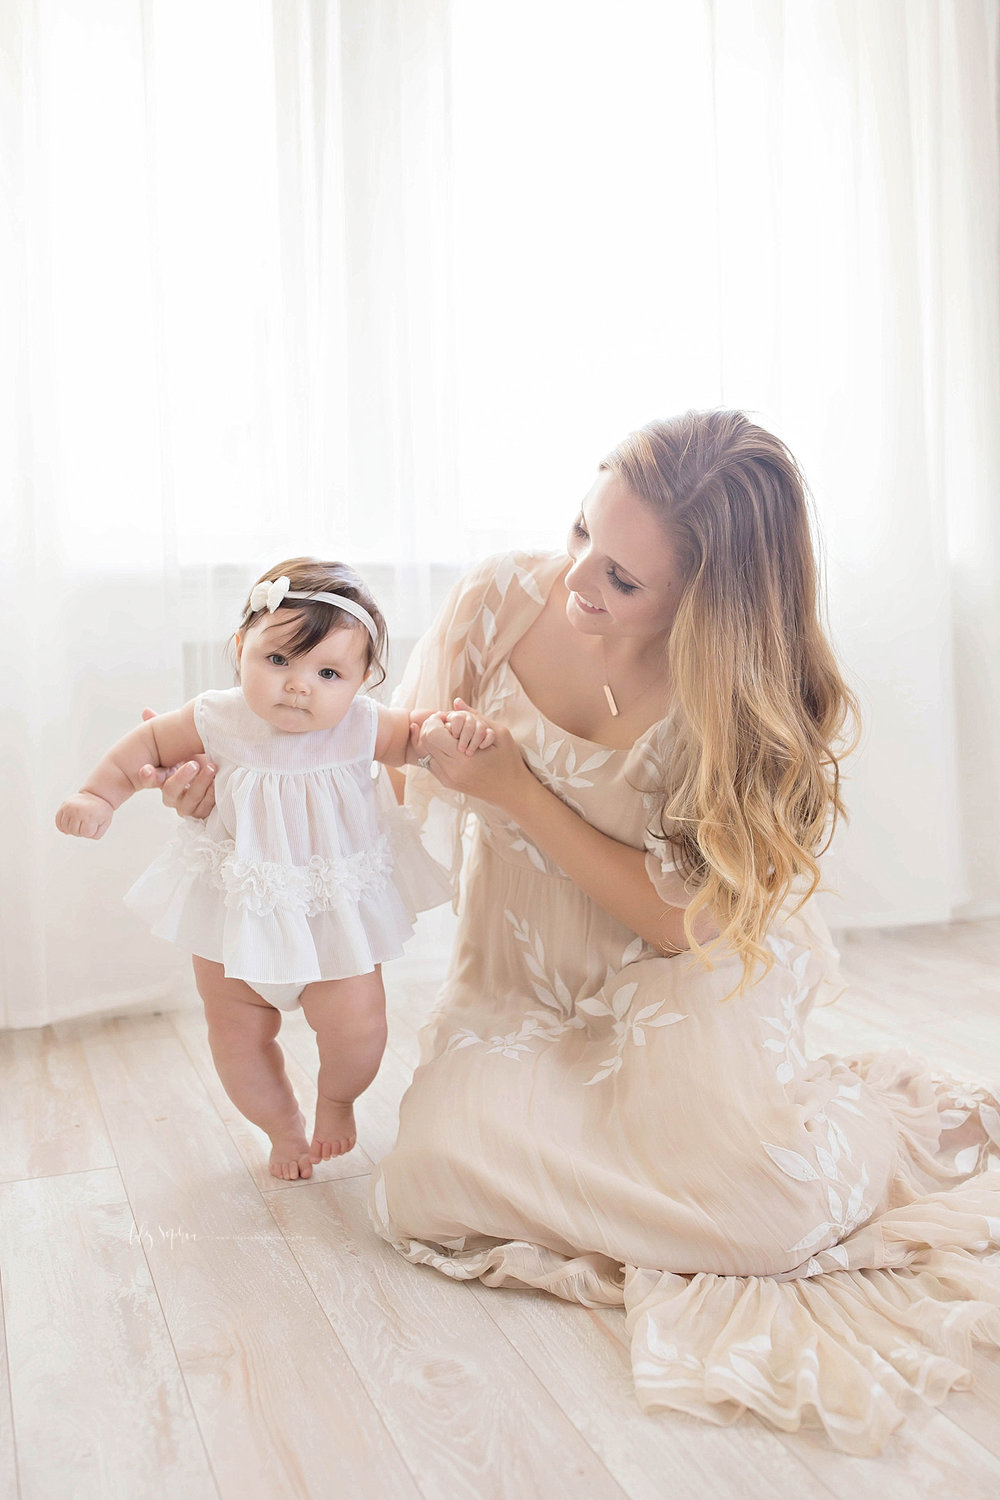 Image of a mother, wearing a taupe dress, helping her baby girl stand up.